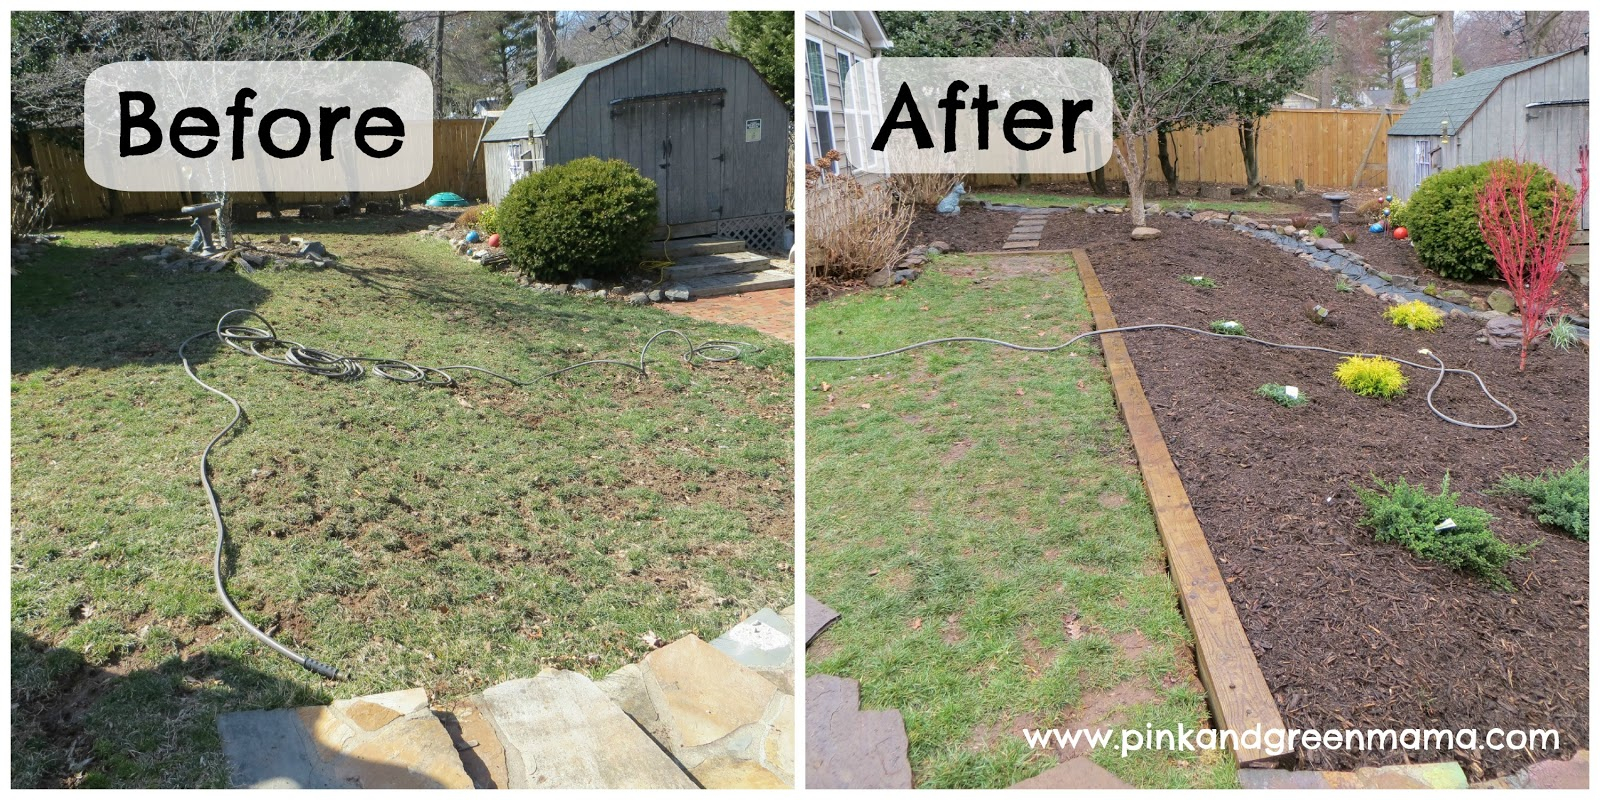 Pink And Green Mama Diy Backyard Makeover On A Budget With Help inside Backyard Makeover Ideas Diy